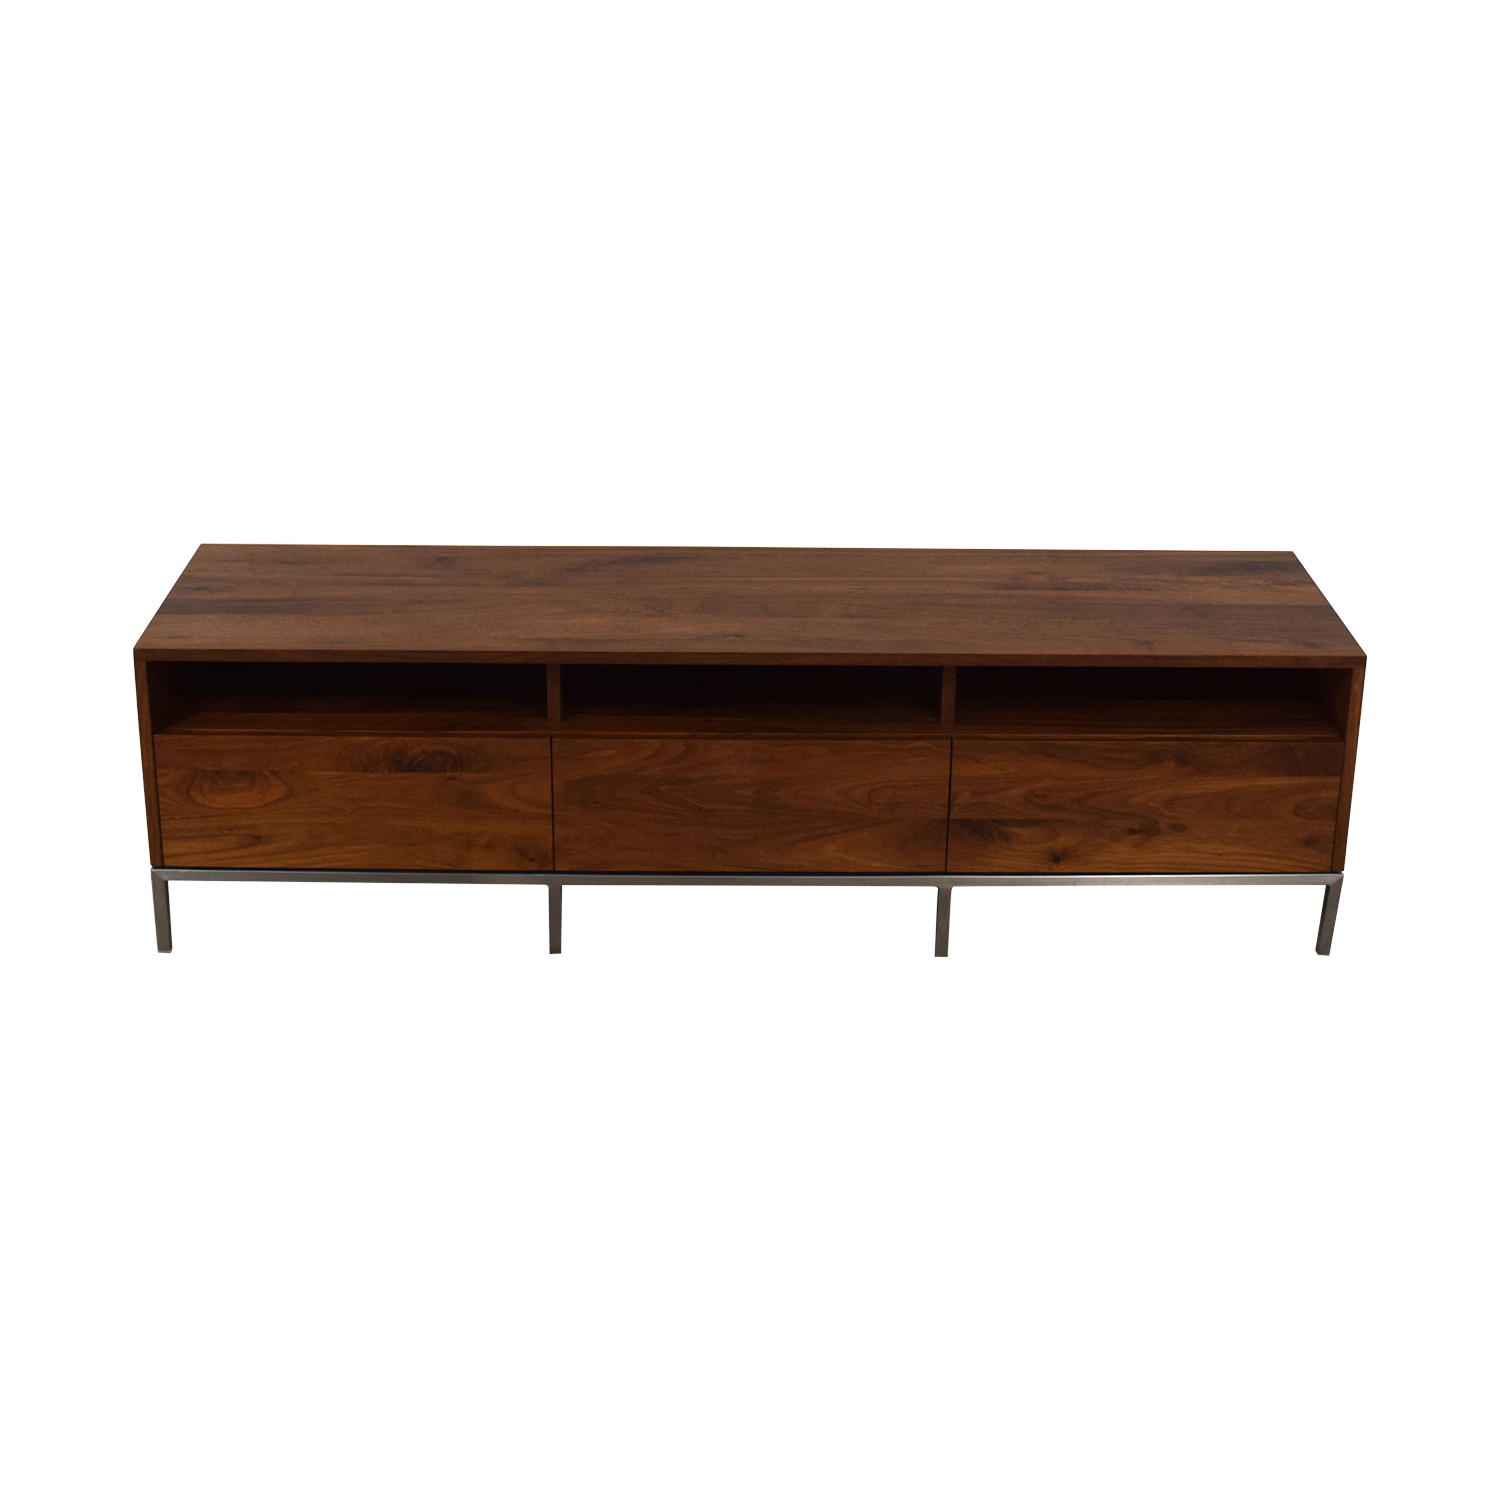 buy Crate & Barrel Crate & Barrel Pearson Media Console online